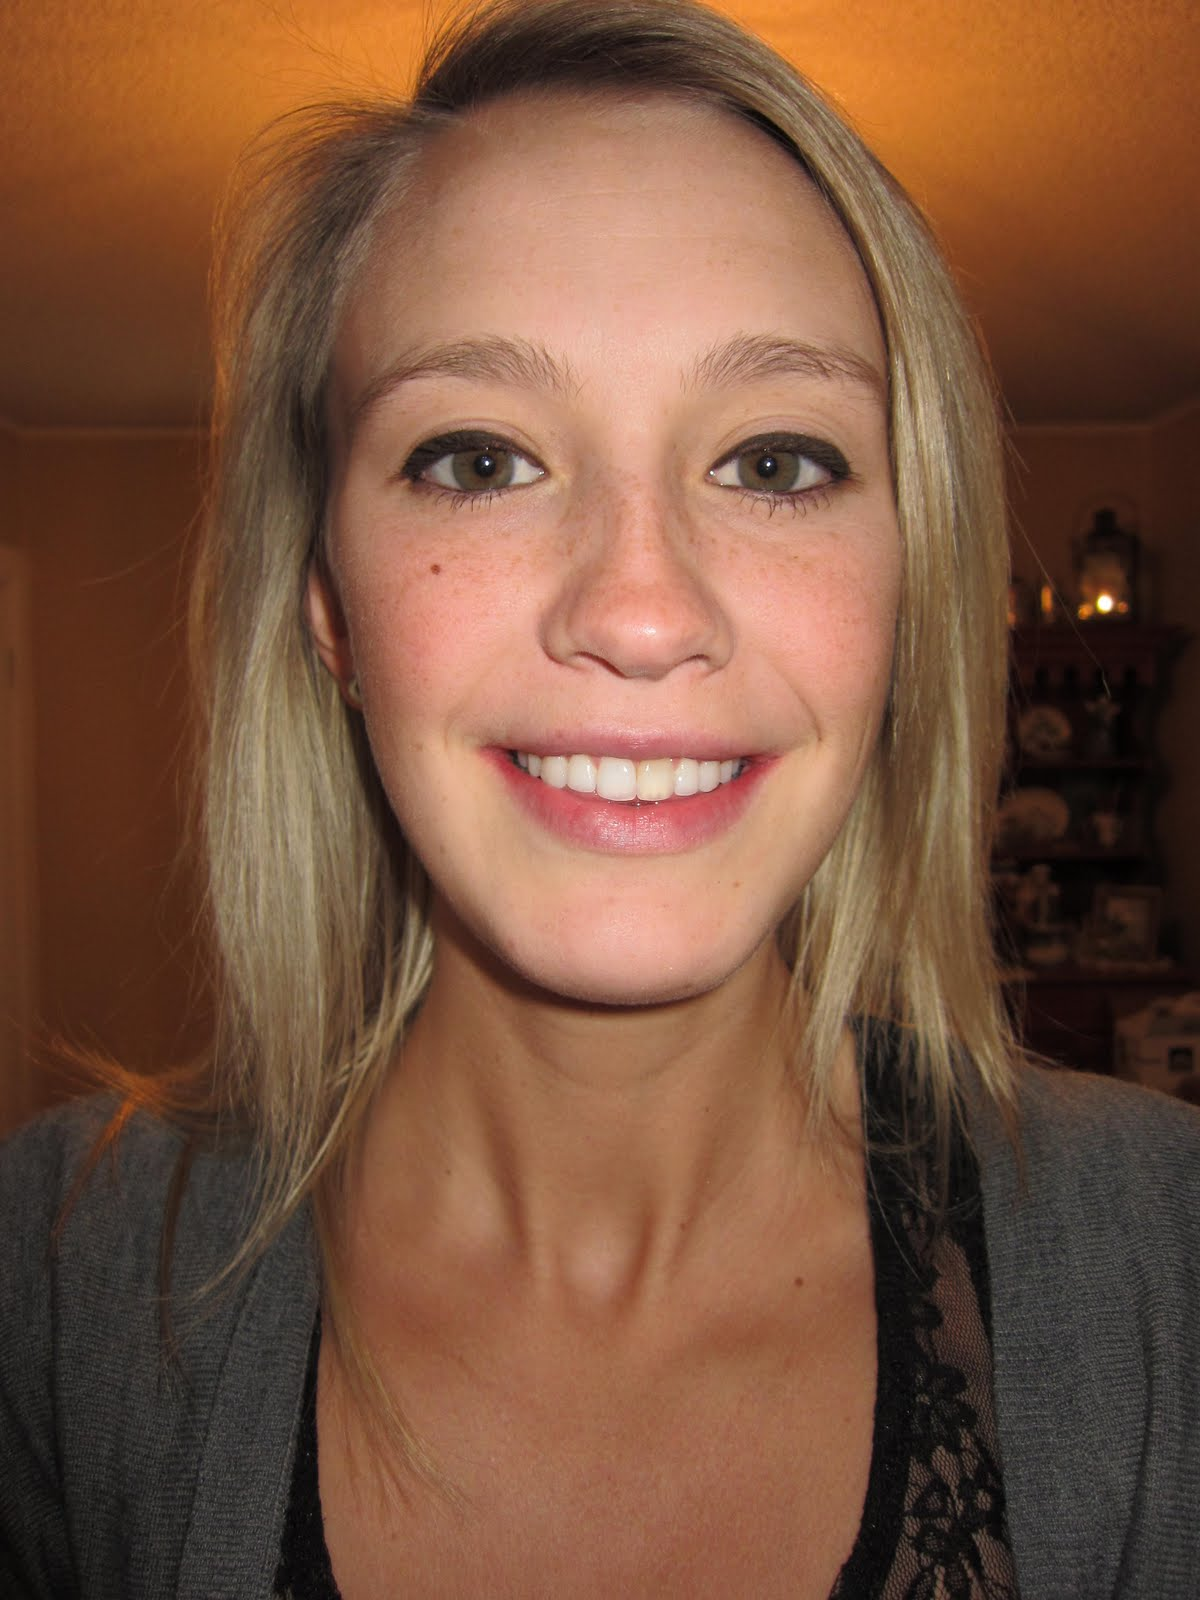 DEBRACED! | emBRACING it - a braces and jaw surgery diary